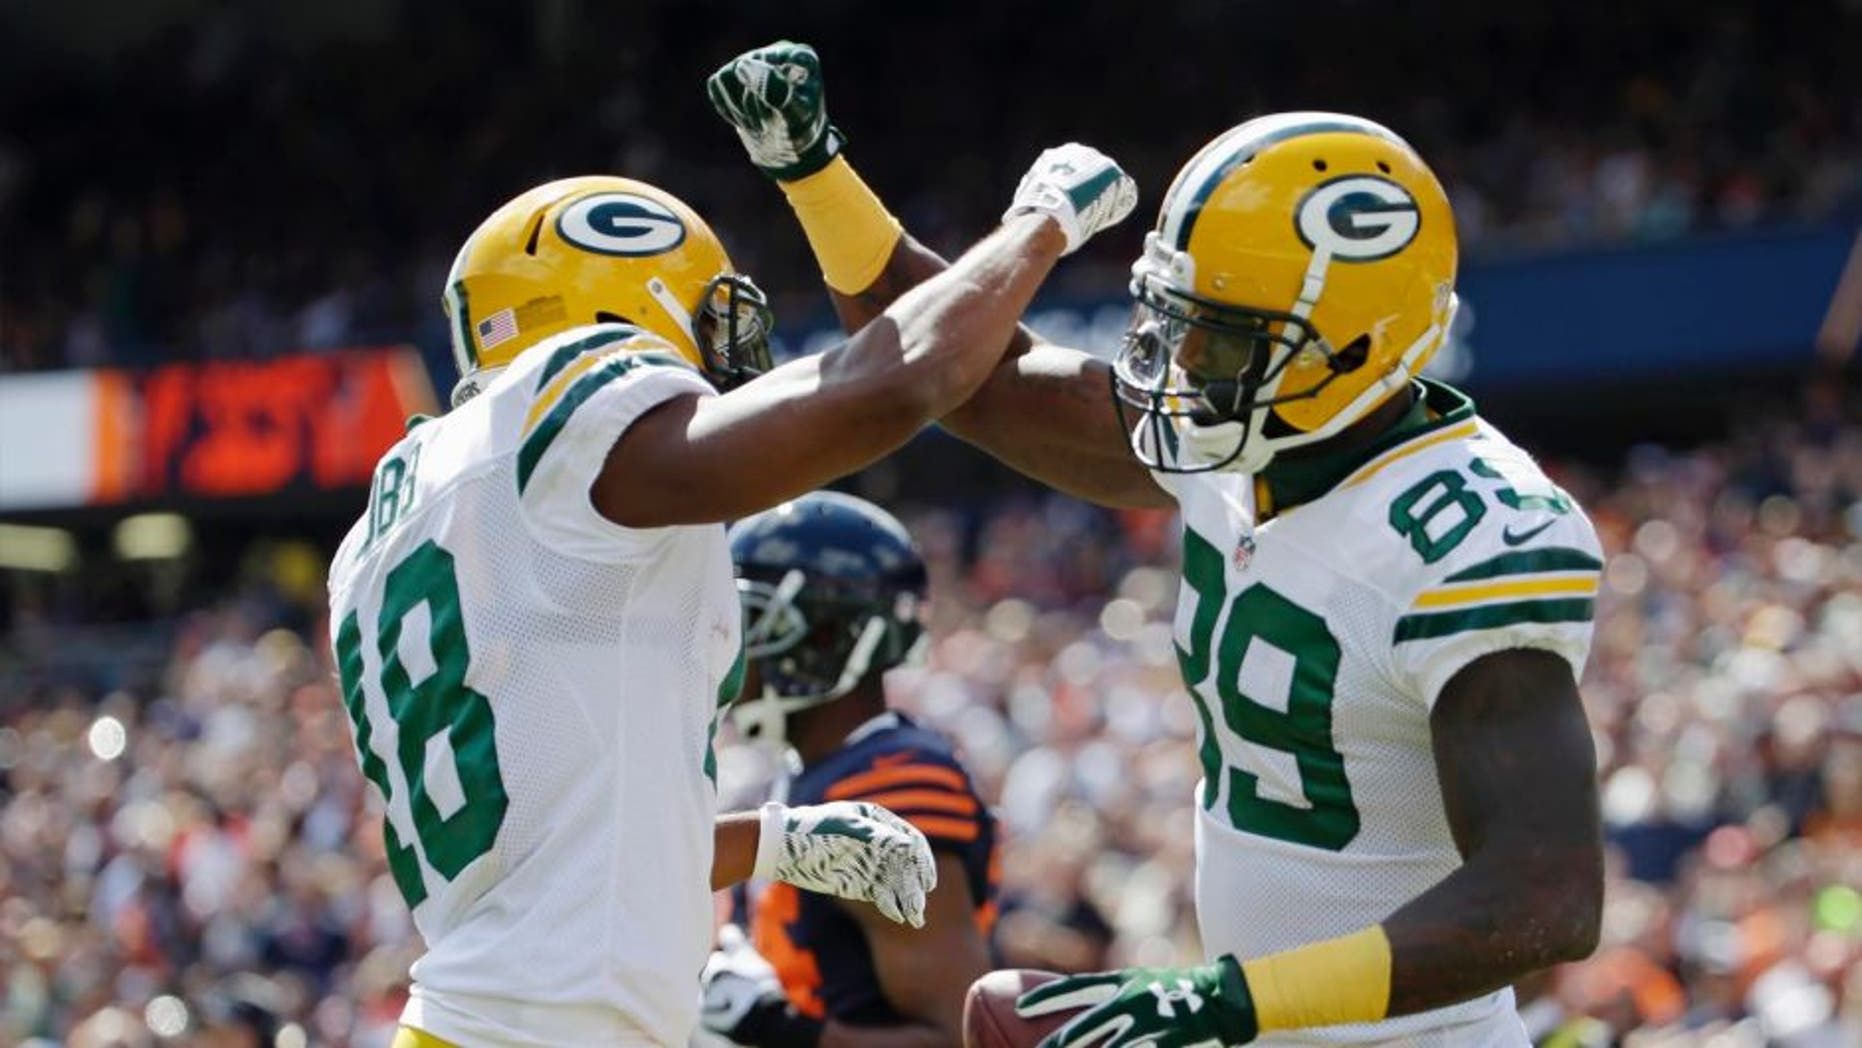 Green Bay Packers wide receiver James Jones (right) celebrates his touchdown reception with wide receiver Randall Cobb during the first half of an NFL football game, Sunday, Sept. 13, 2015, in Chicago.